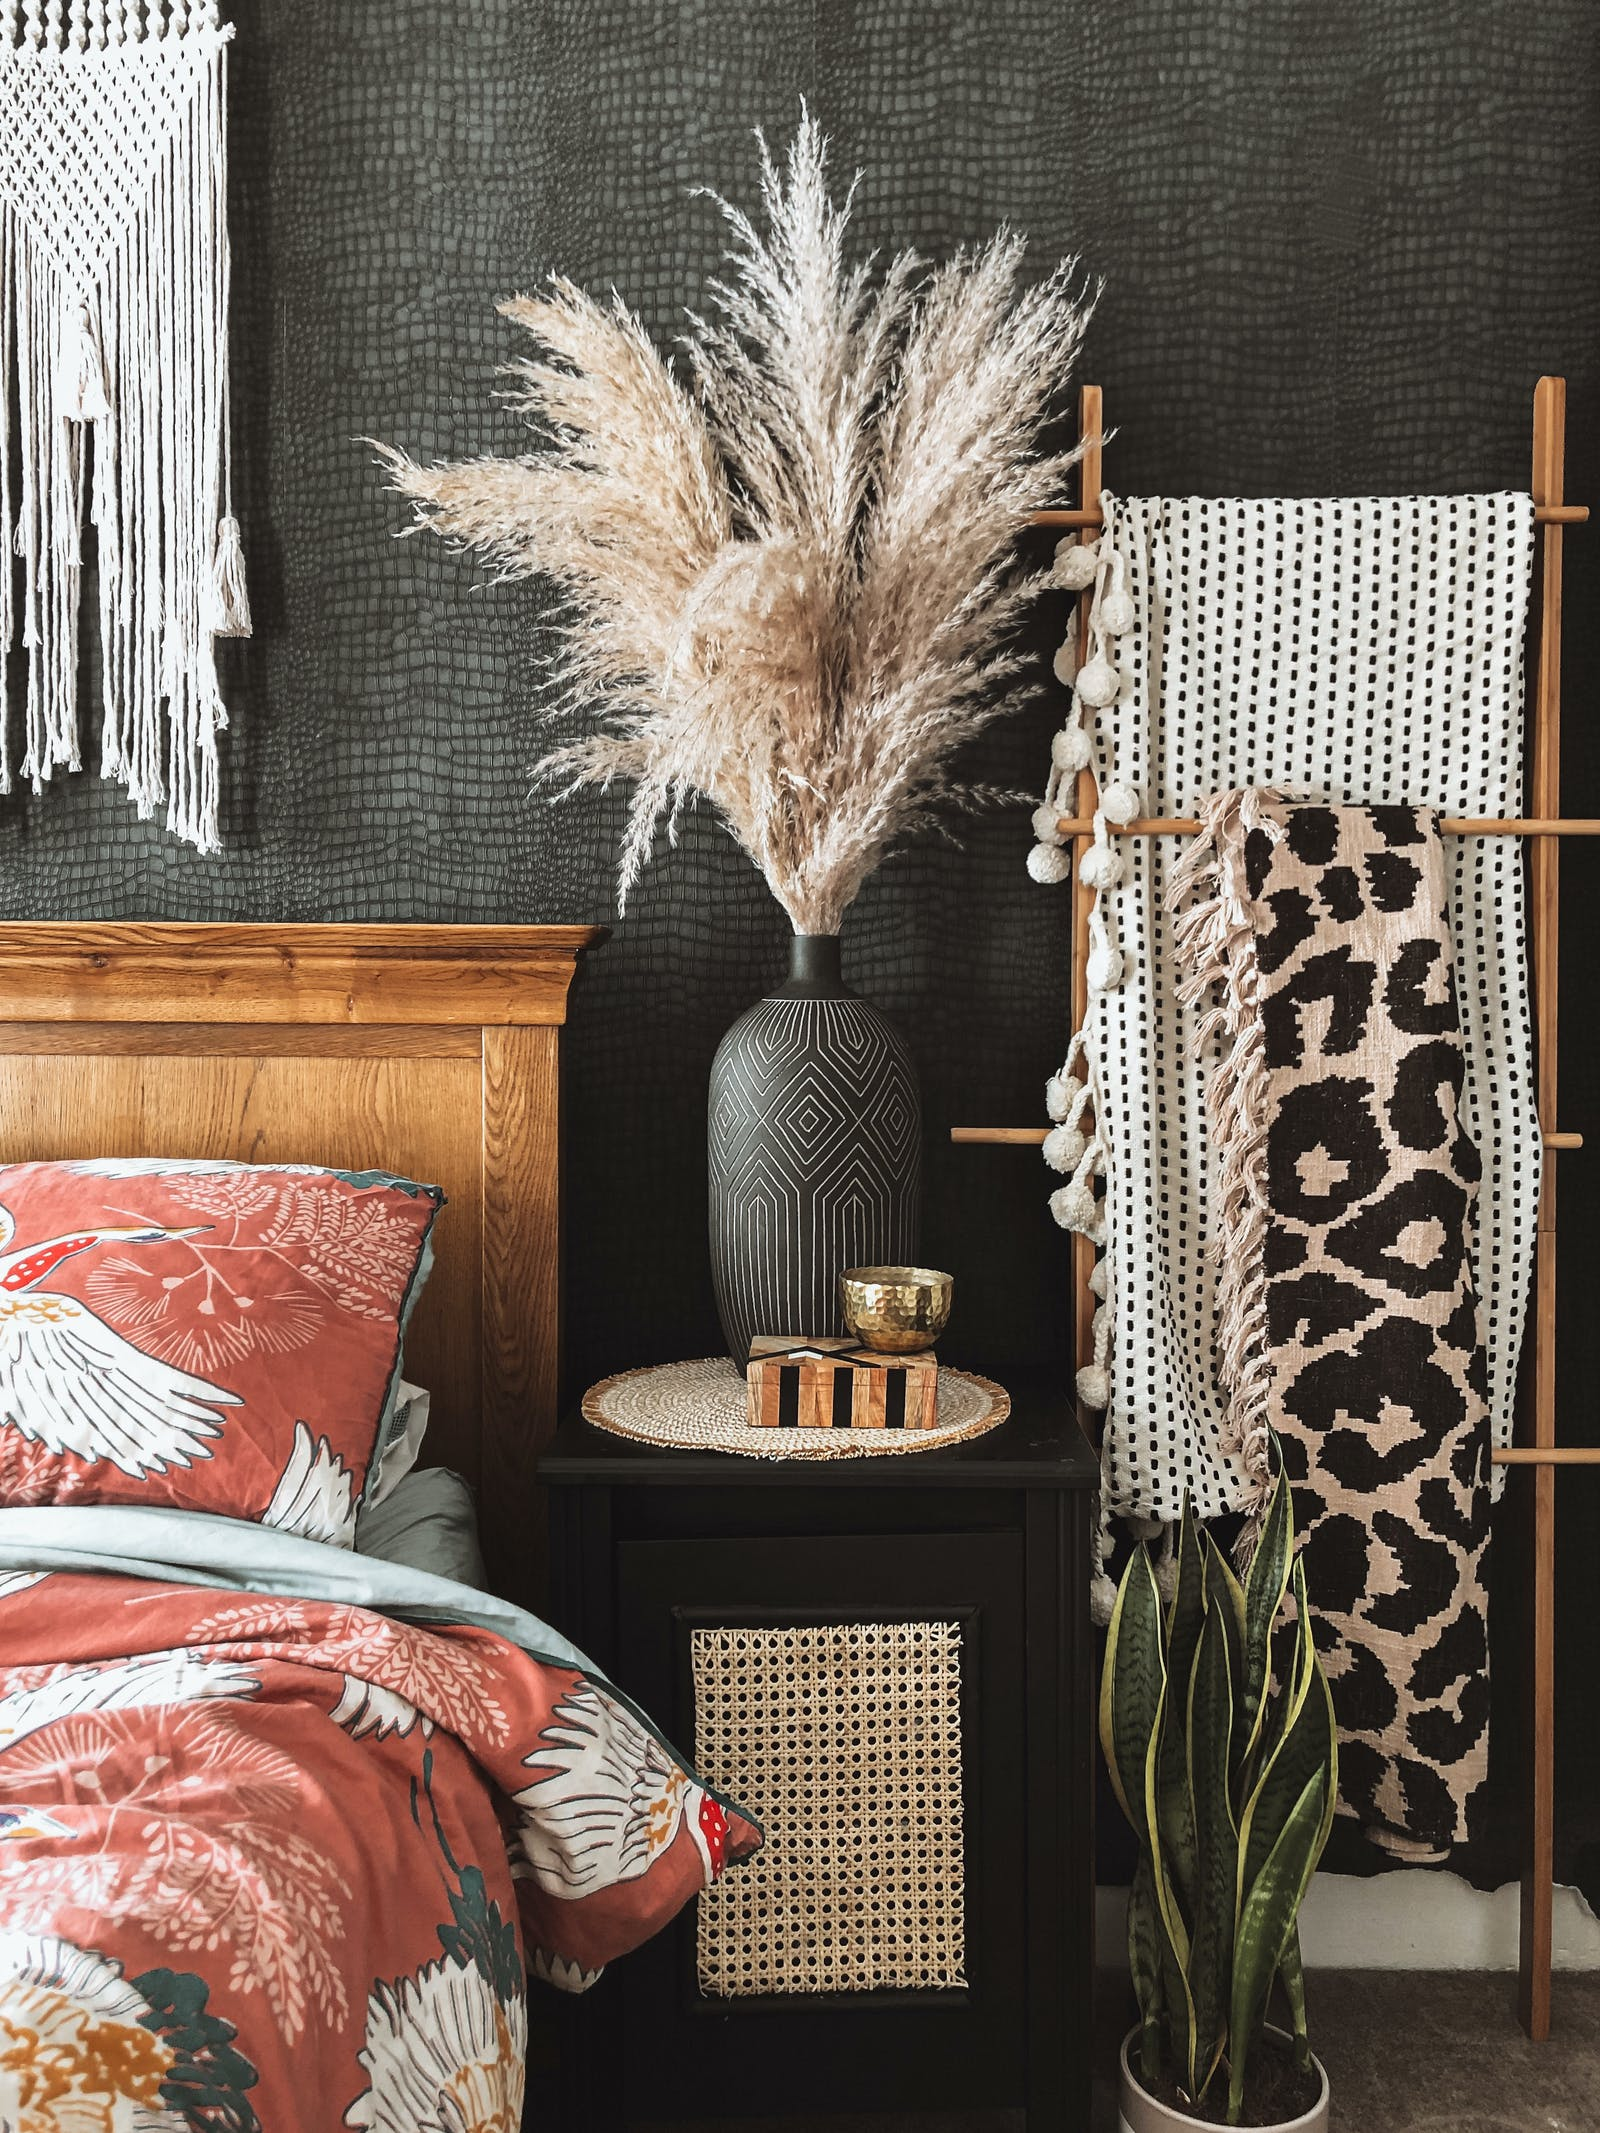 Bedroom details with a lot of textures and boho styling